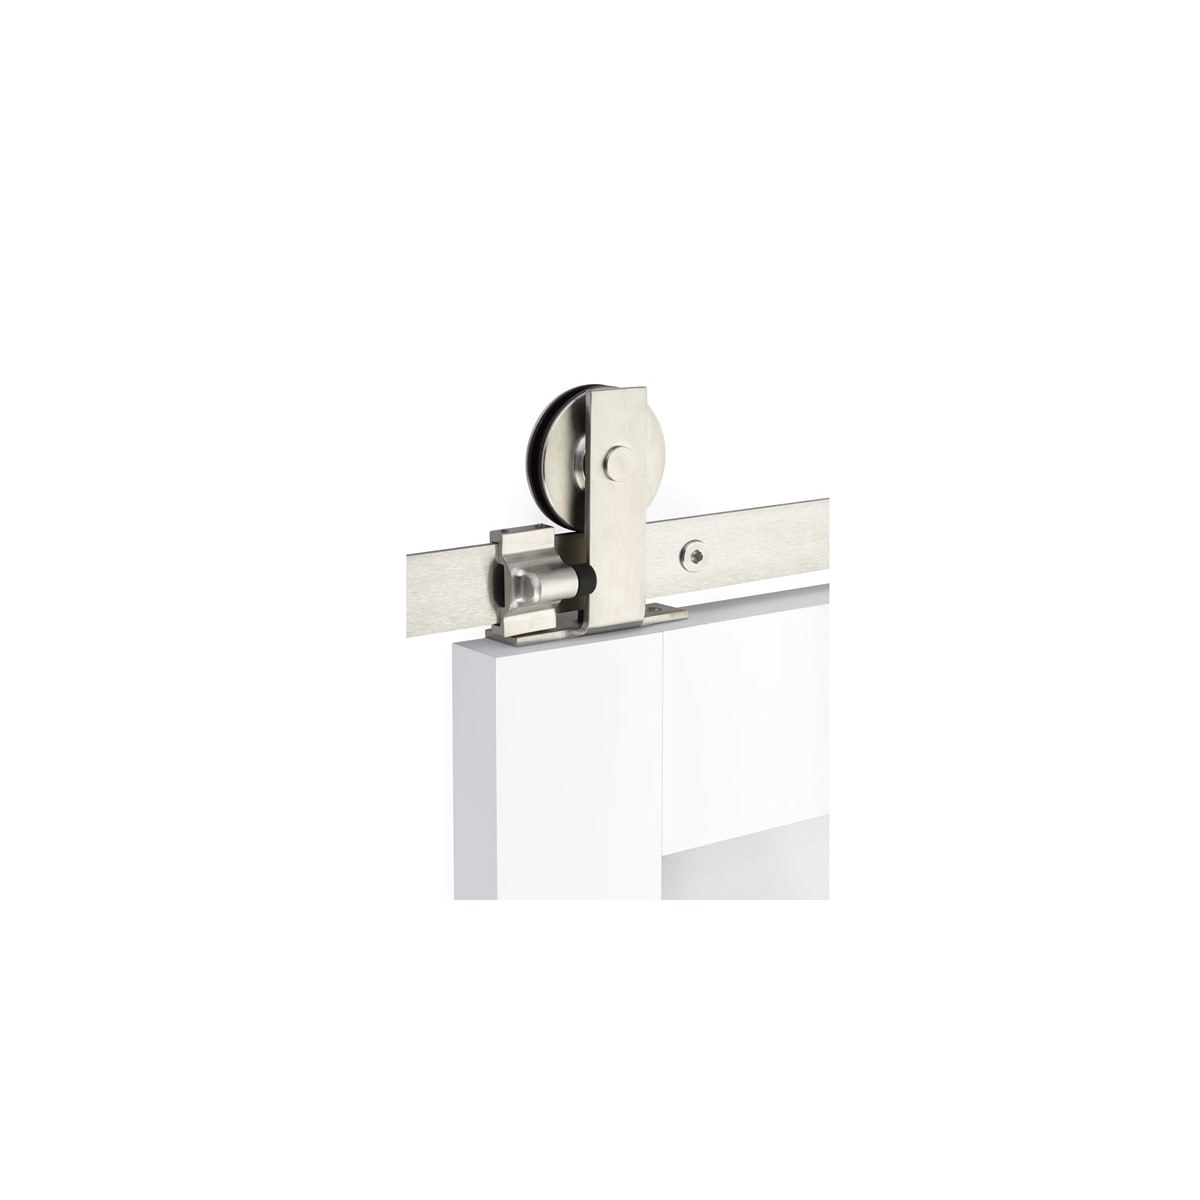 Emtek Modern Rectangular 72-5/8 Inch Top Mount Double Barn Door Hardware Set - Includes Track, Hangers, and Matching Hardware